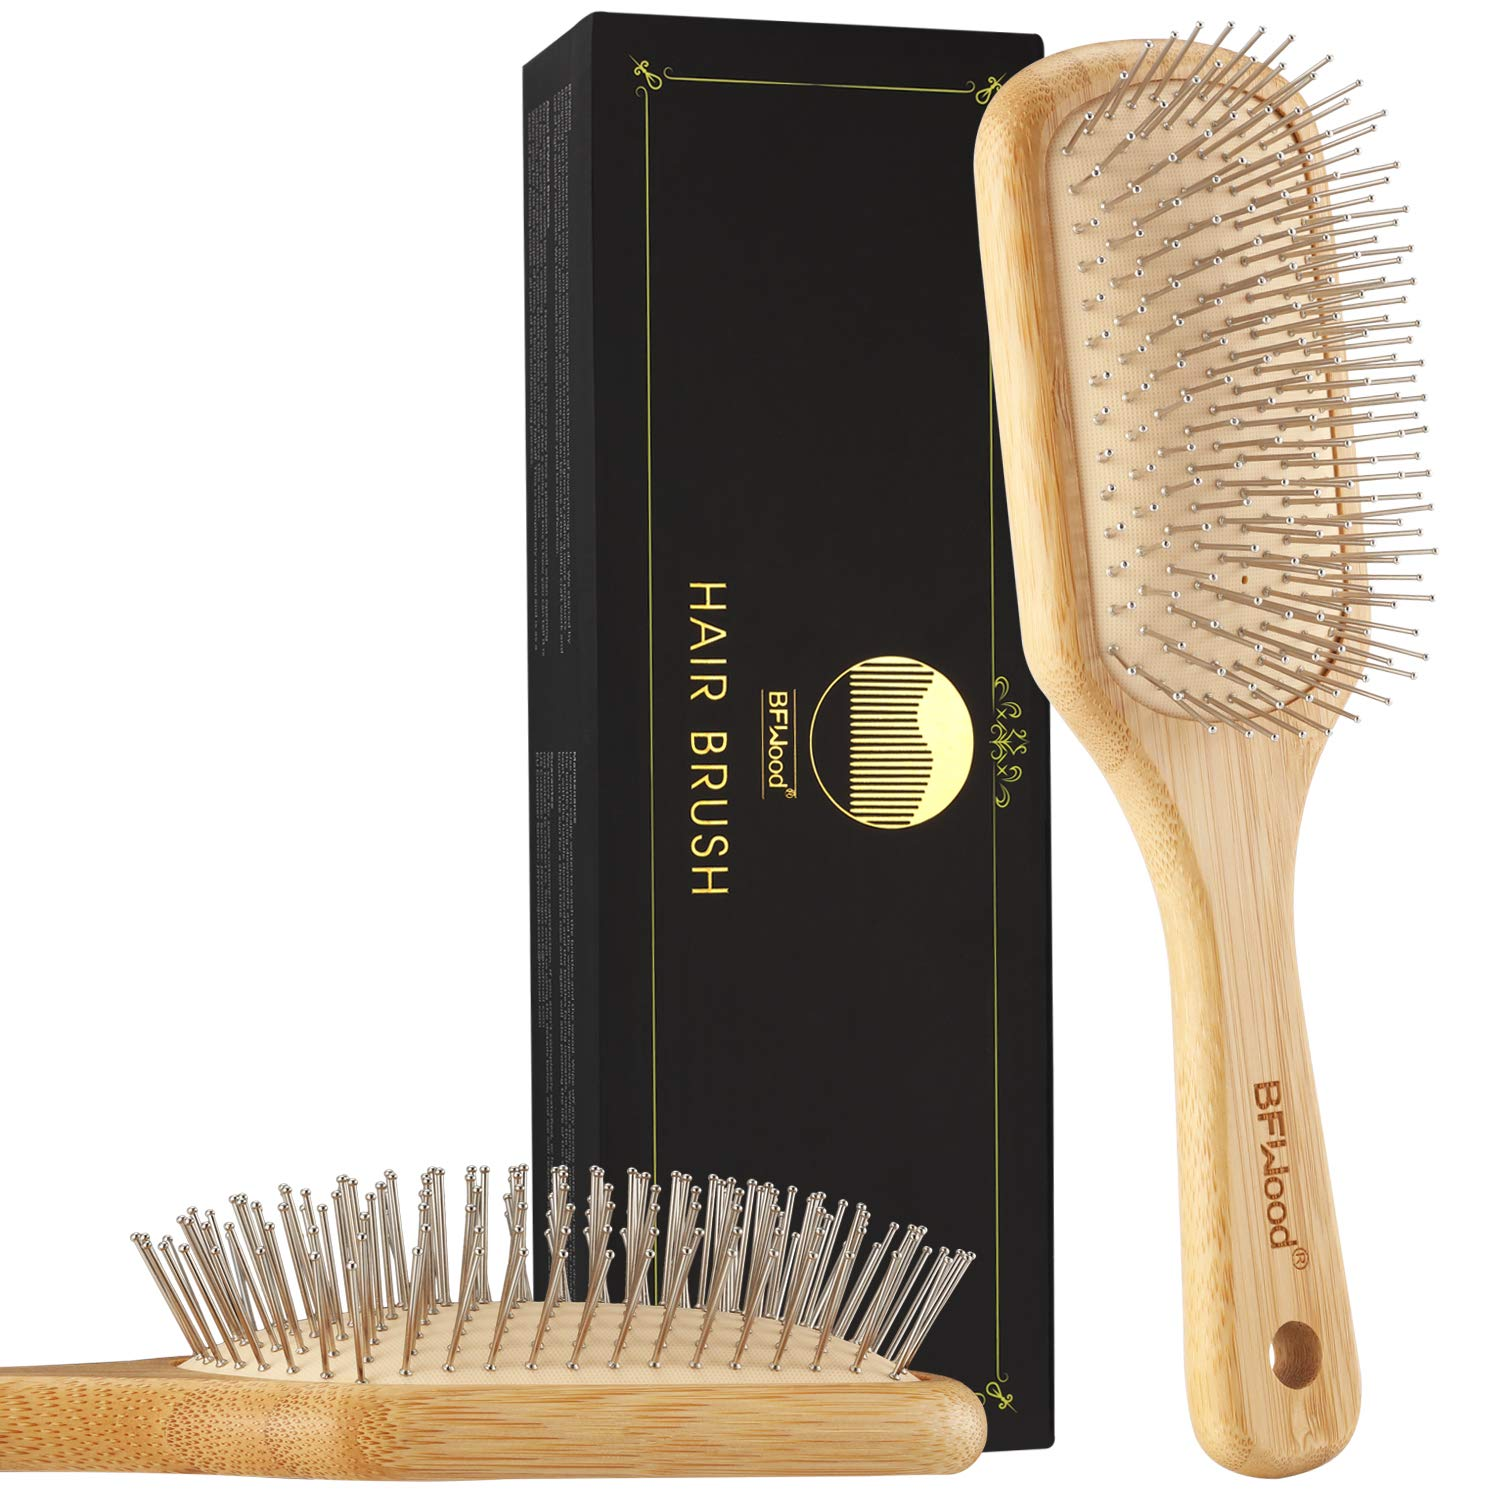 BFWood Bamboo Hair Brush with Steel Bristles for Anti-Static & Massaging Scalp